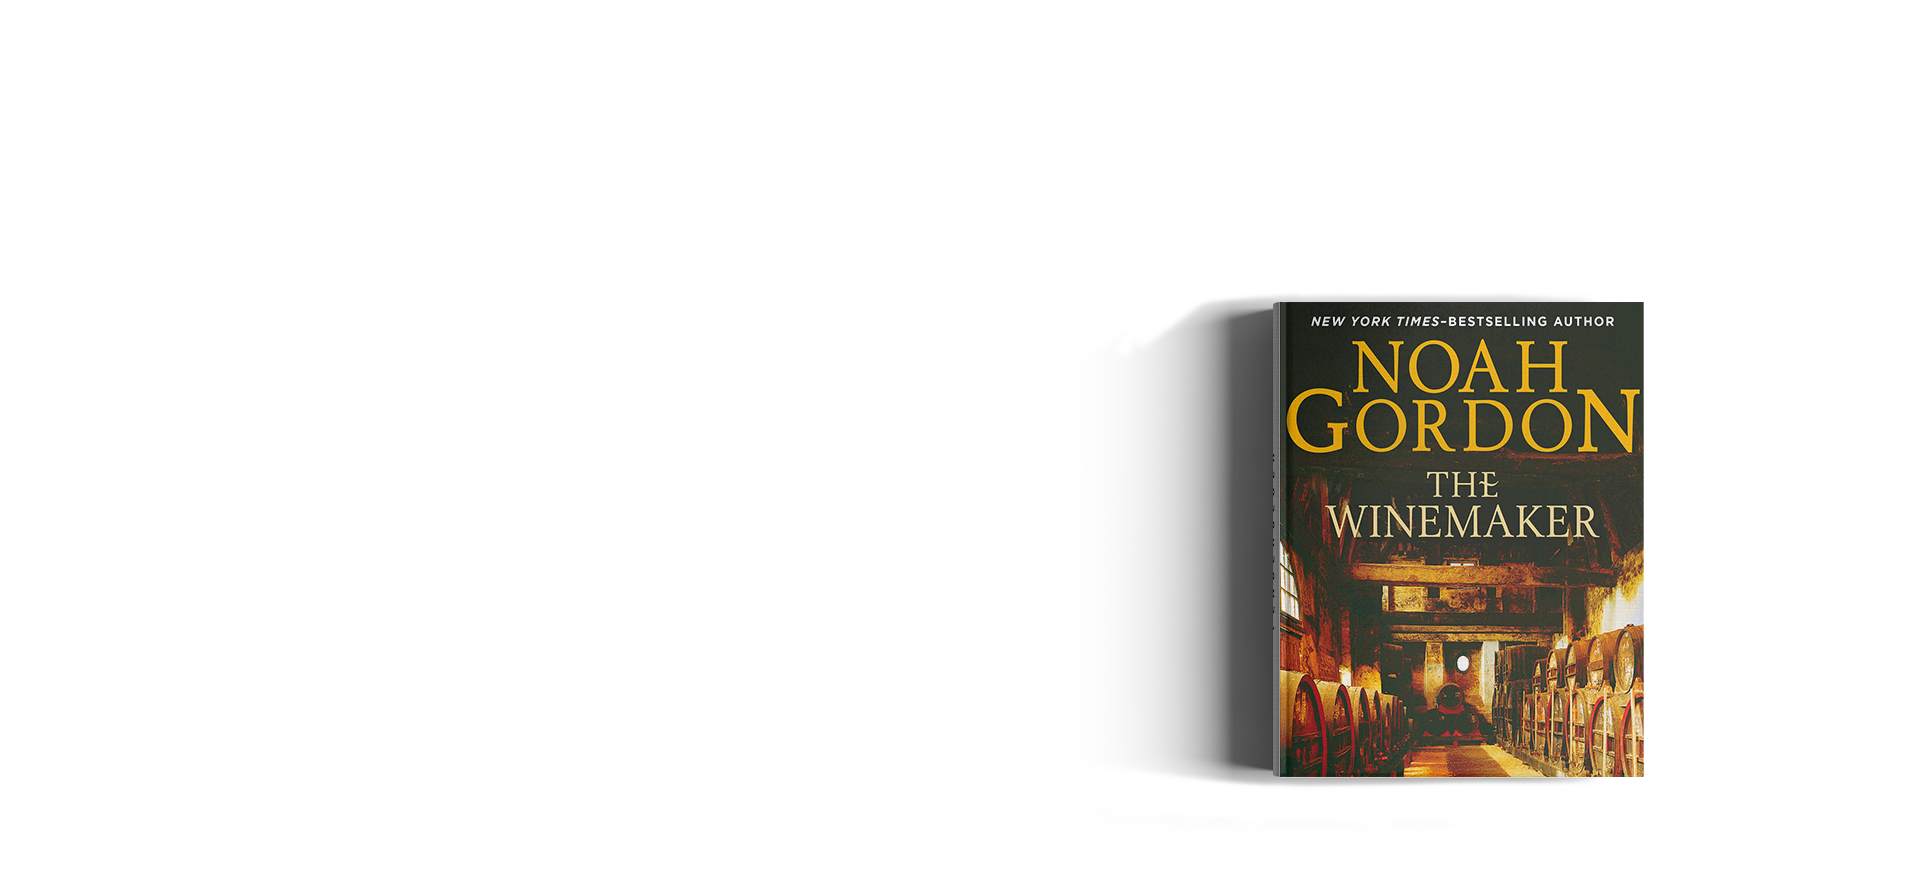 Noah Gordon's books are available in Audio format from Amazon/Audible._